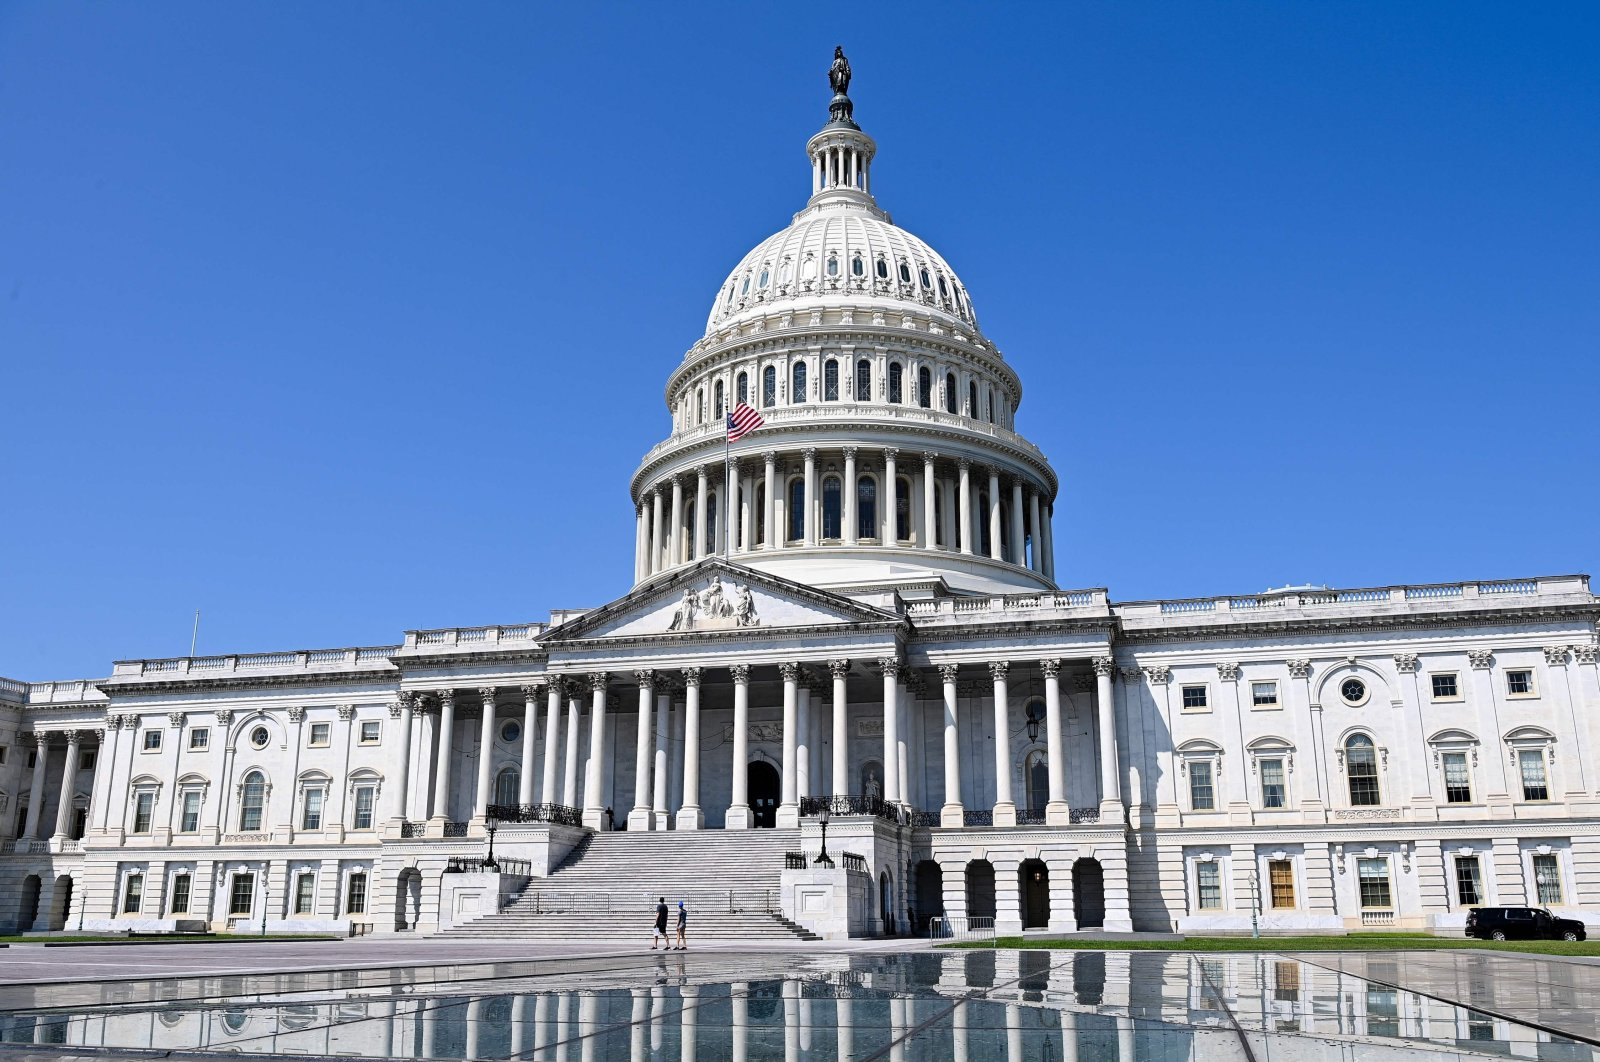 The dome of the U.S. Capitol is seen in Washington, D.C., on Aug. 8, 2021. (AFP Photo)